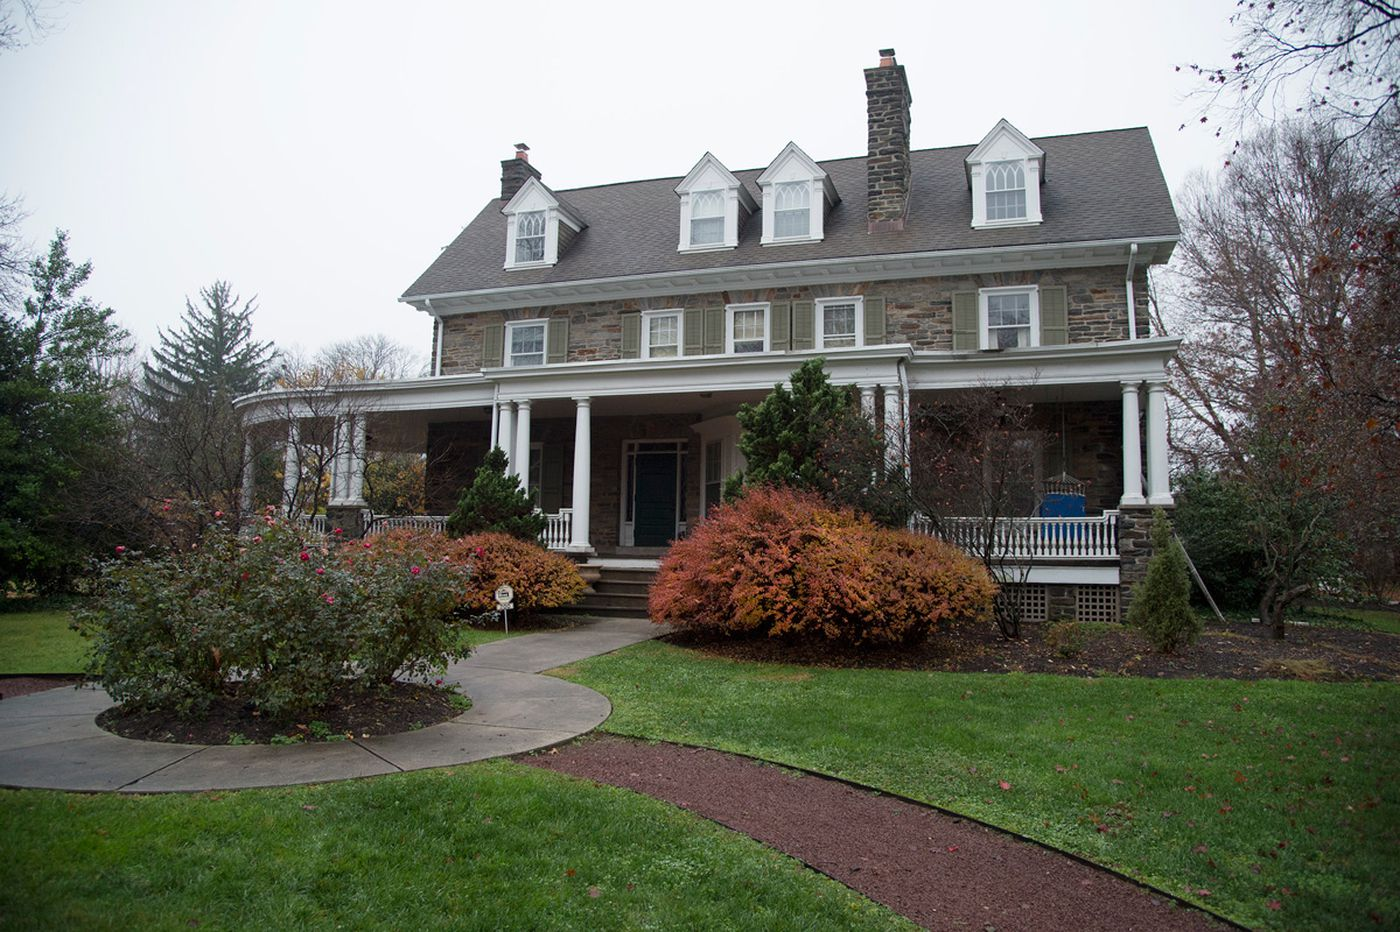 Planned group home in Swarthmore for cancer patients creates controversy